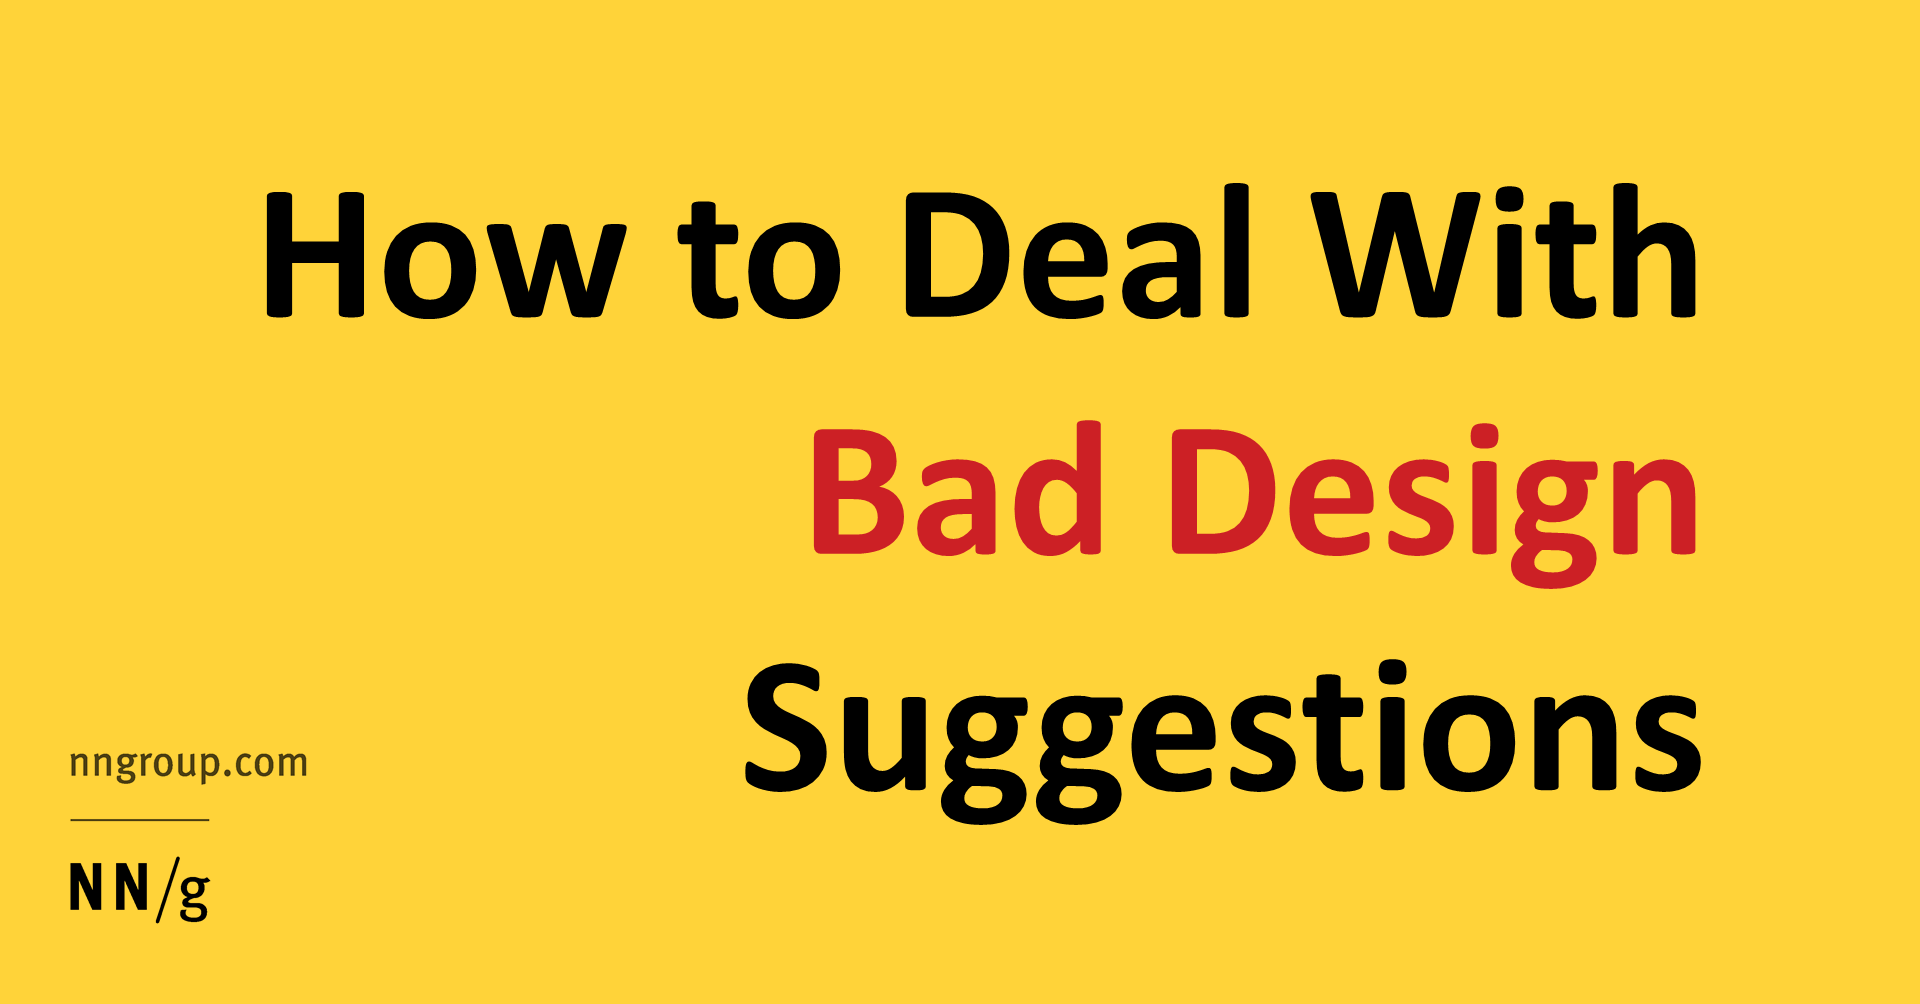 Bad Design How To Deal With Bad Design Suggestions